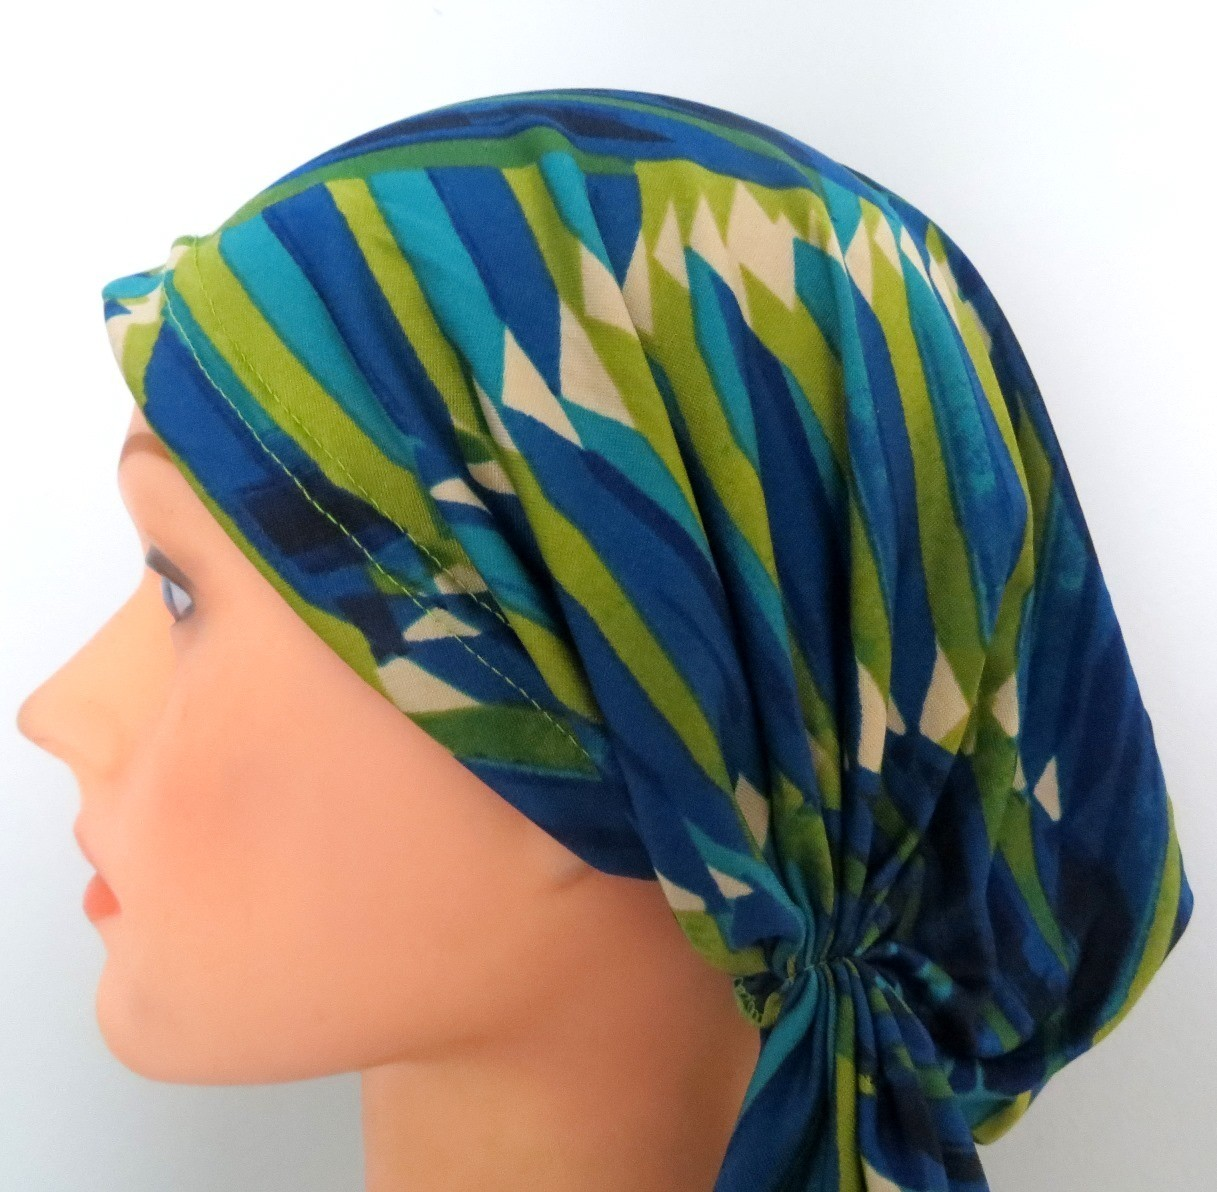 Blue and green stretchy pre-tied tichel headcovering